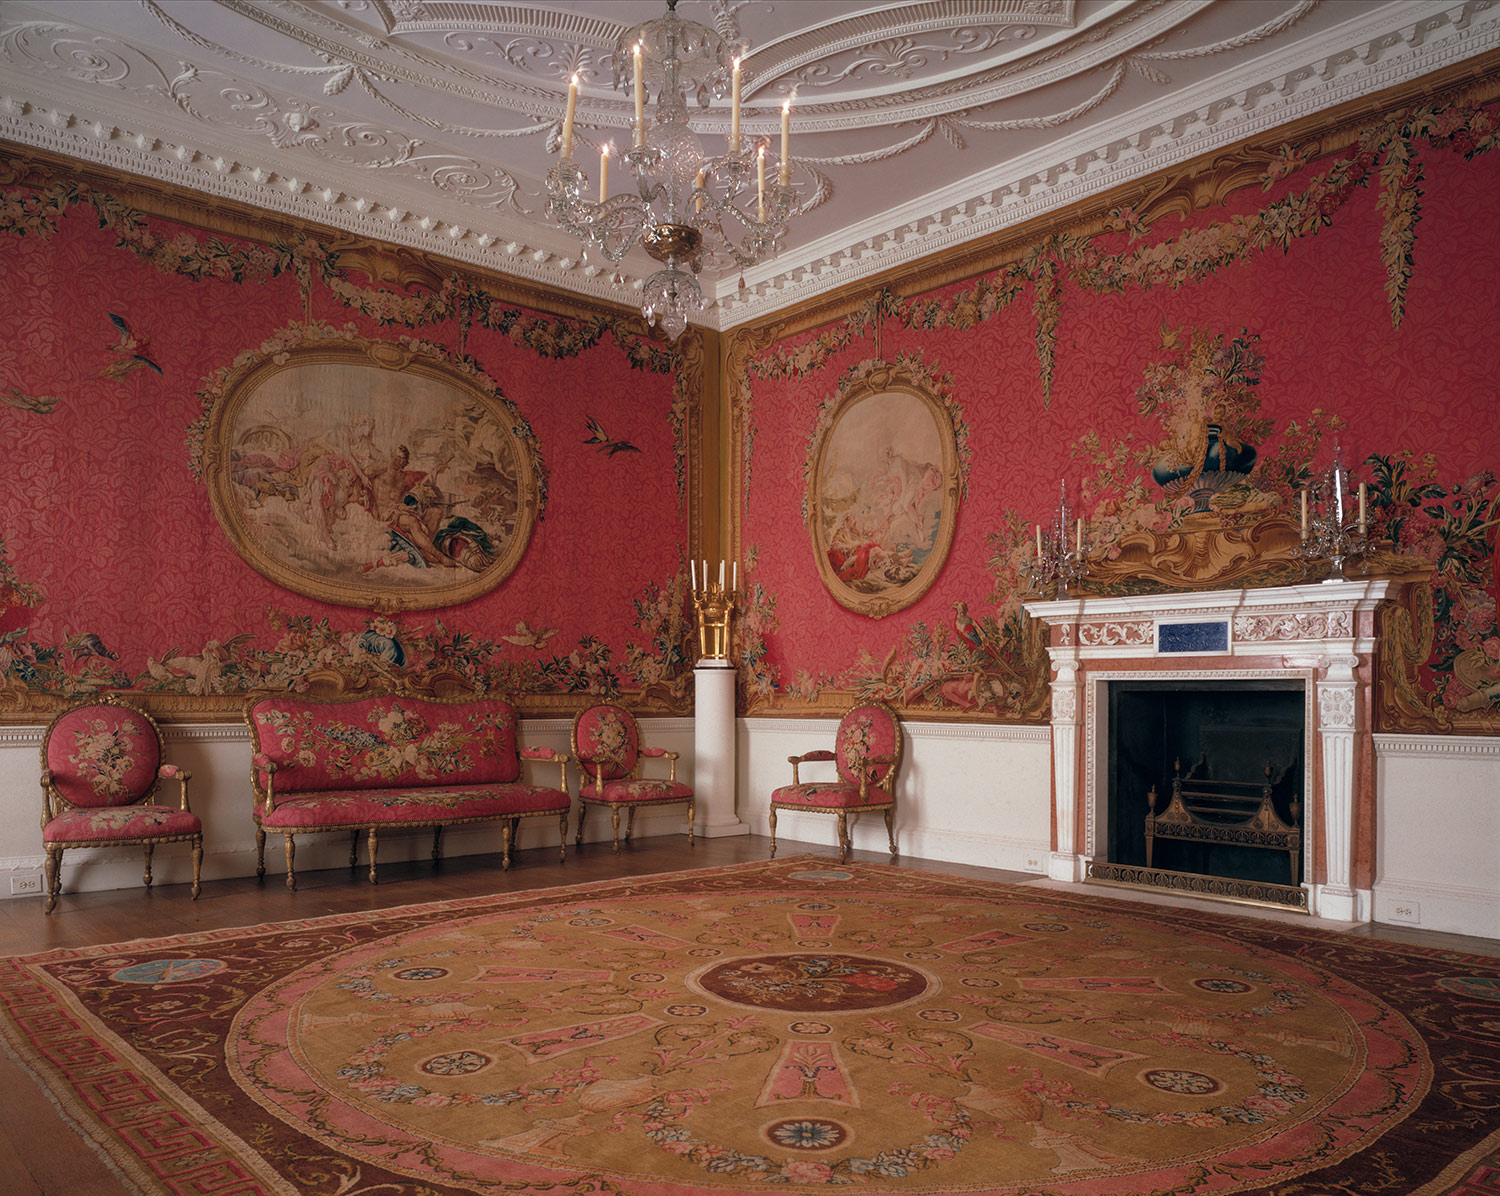 Robert Adam The Croome Court tapestry room Worcestershire 5875122  Heilbrunn Timeline of